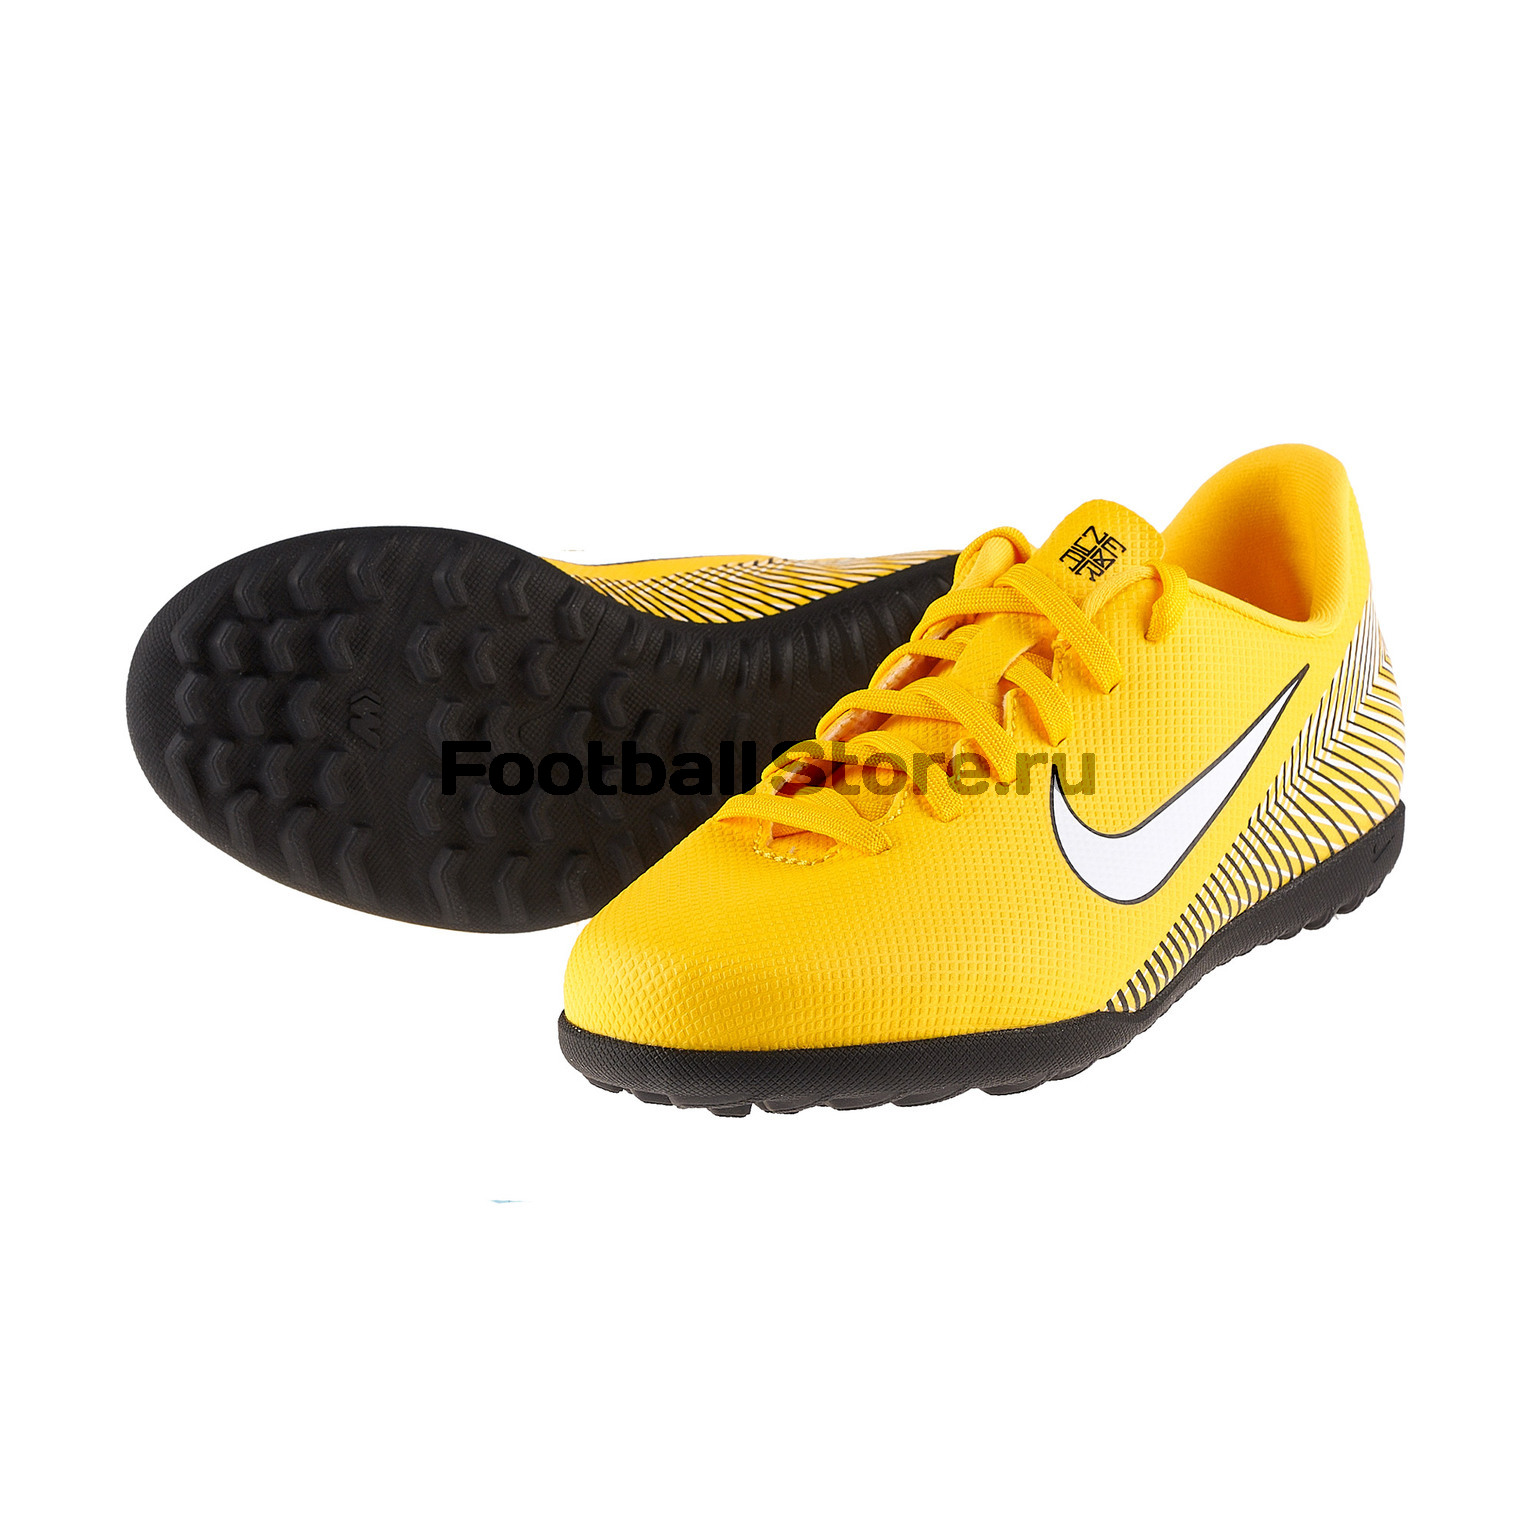 Шиповки детские Nike Vapor 12 Club Neymar TF AO9478-710 бутсы nike шиповки nike jr tiempox legend vi tf 819191 018